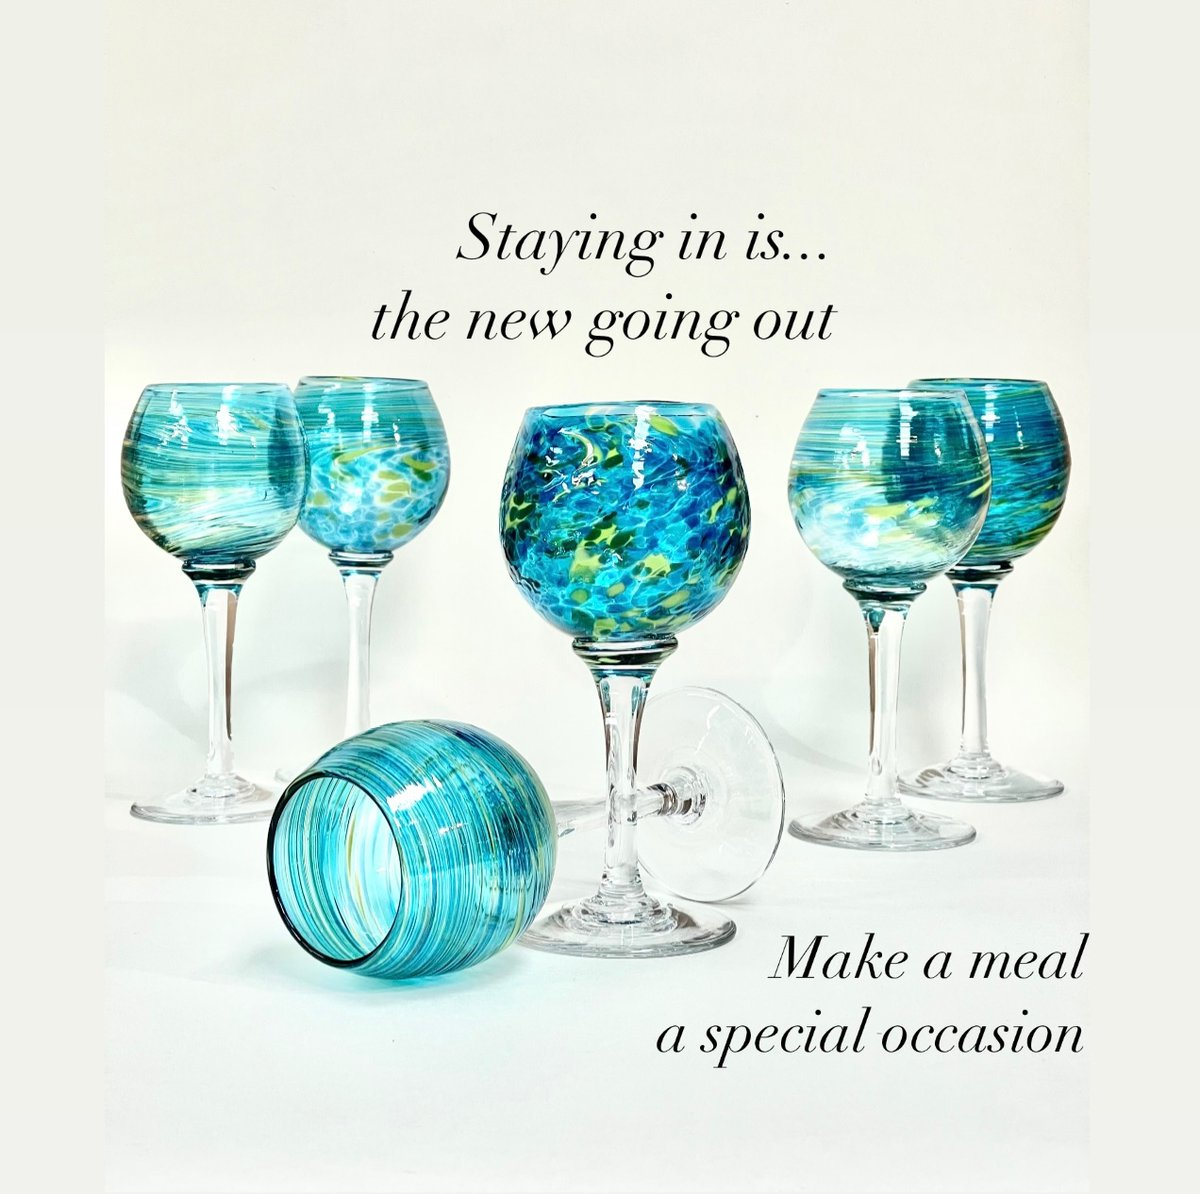 Lockdown Dining can be a special occasion with Bath Aqua Glass!    #Handblown in our glass blowing studio Bath   #love #gift  #handmade #instagood #luxury #giftideas #shopsmall #beautiful #lockdowndining #wineoclock #winetime